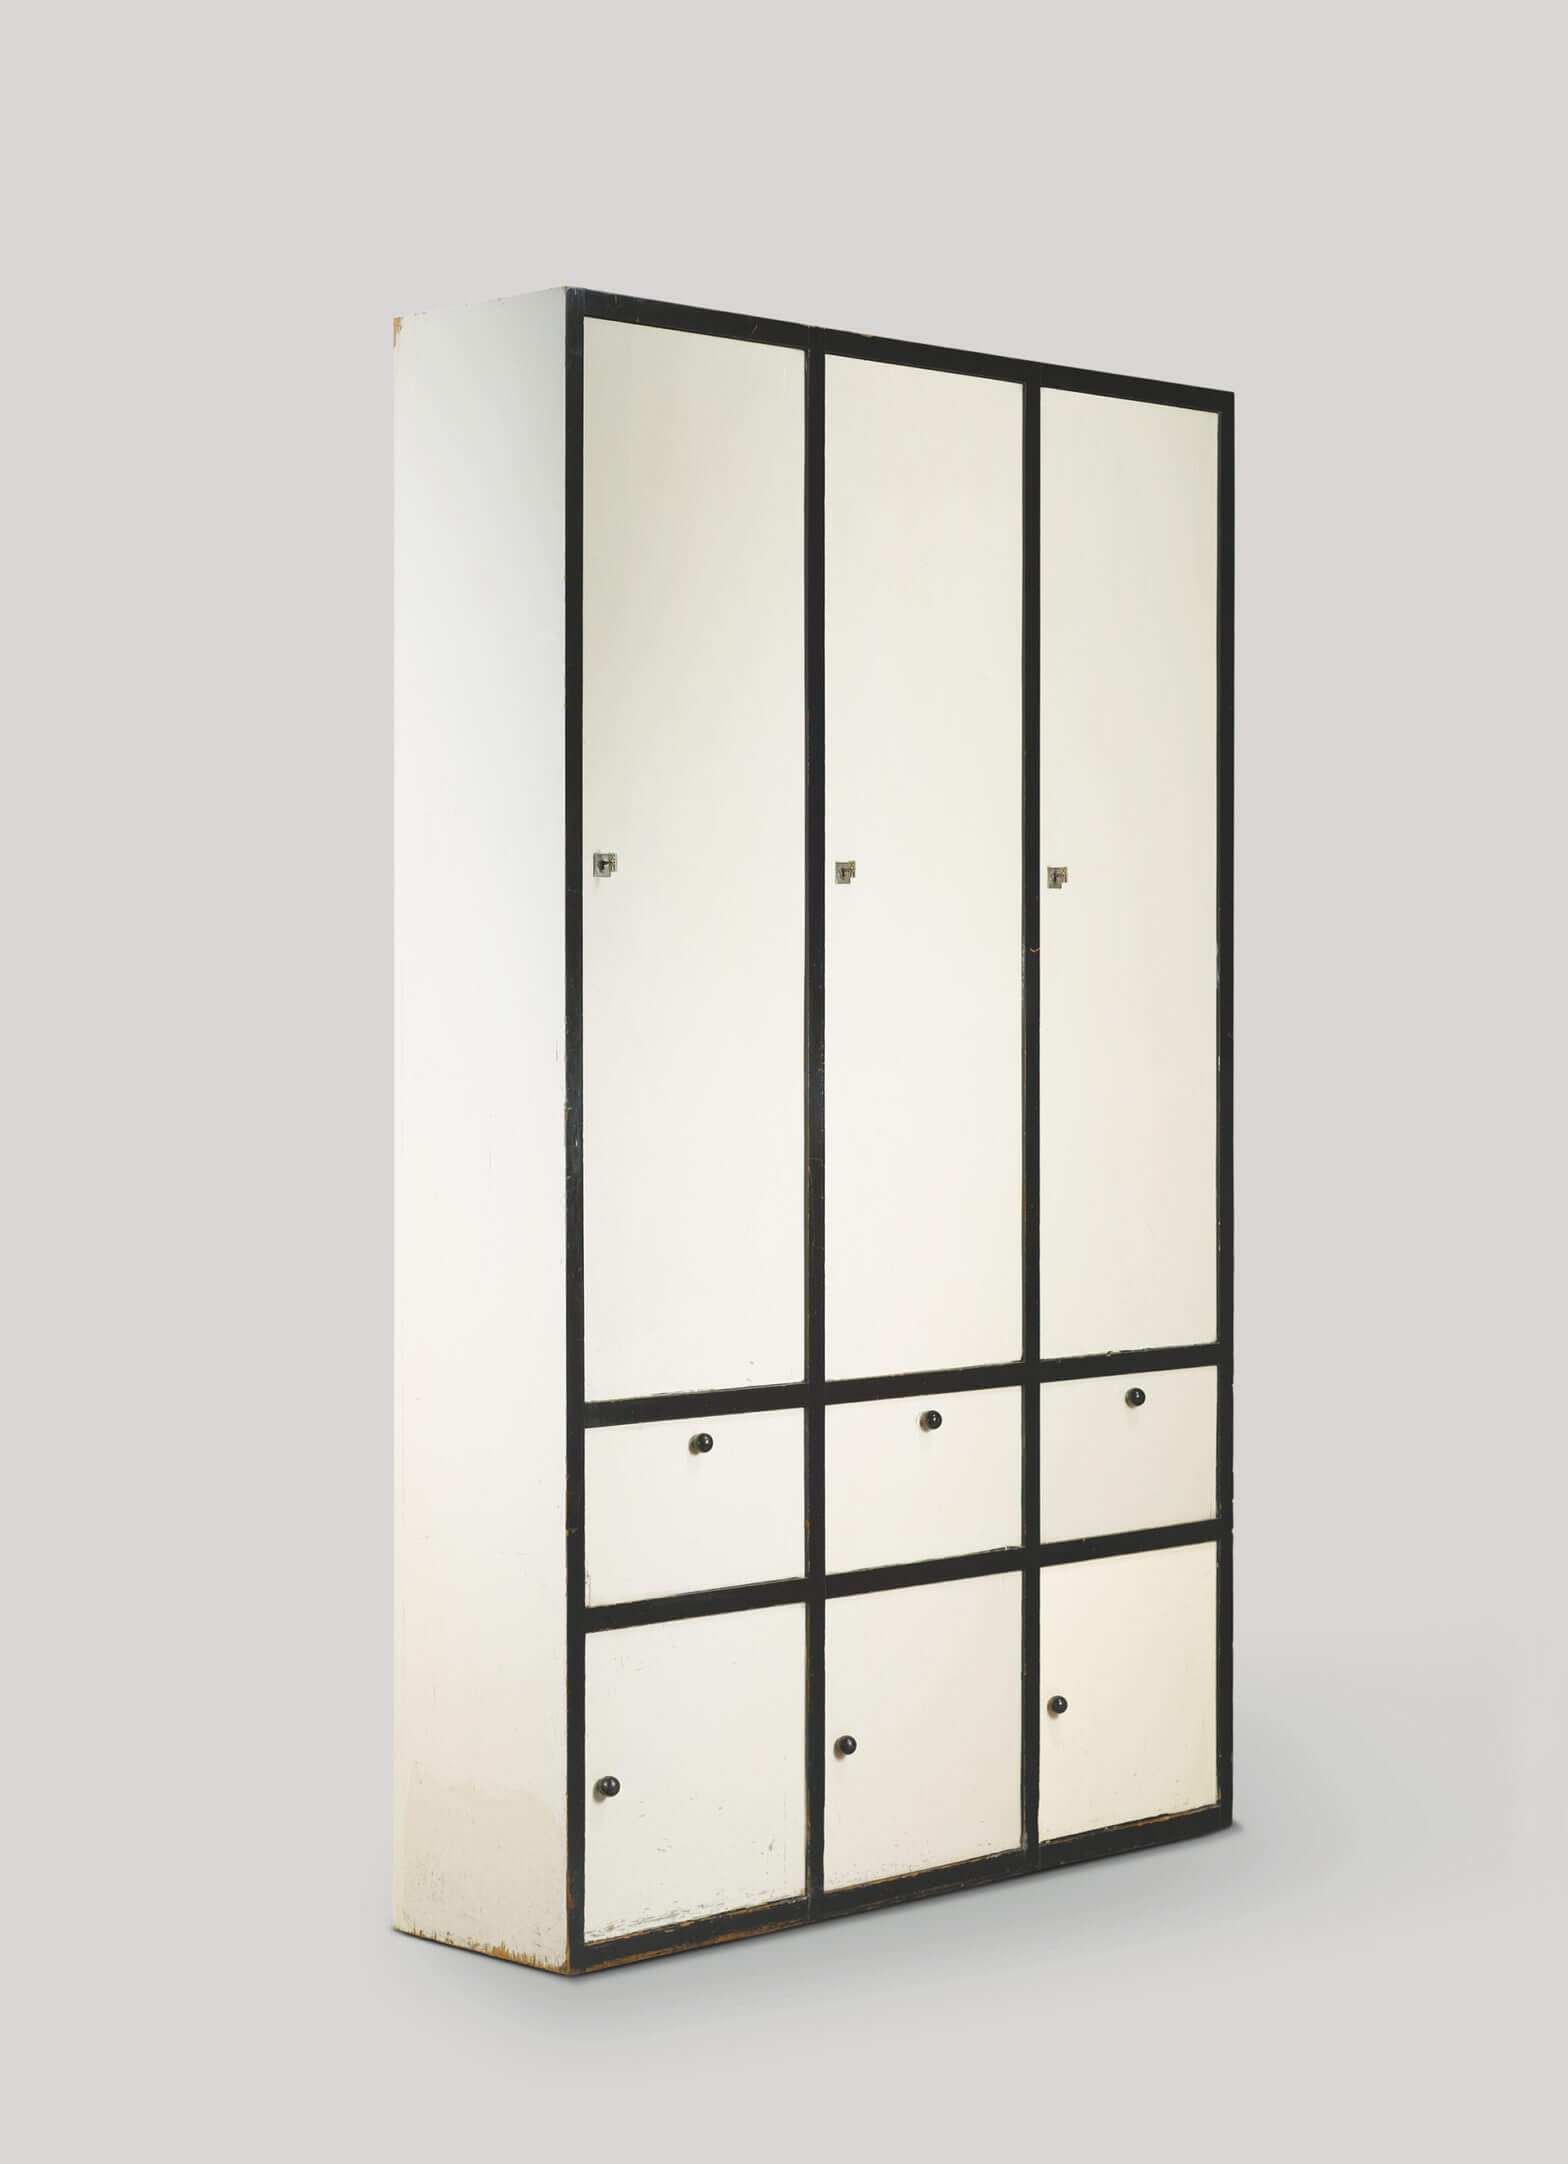 Josef Hoffmann - Cabinet for the Flöge sisters' fashion house, MAK, Vienna, NGV, National Gallery of Victoria, Melbourne